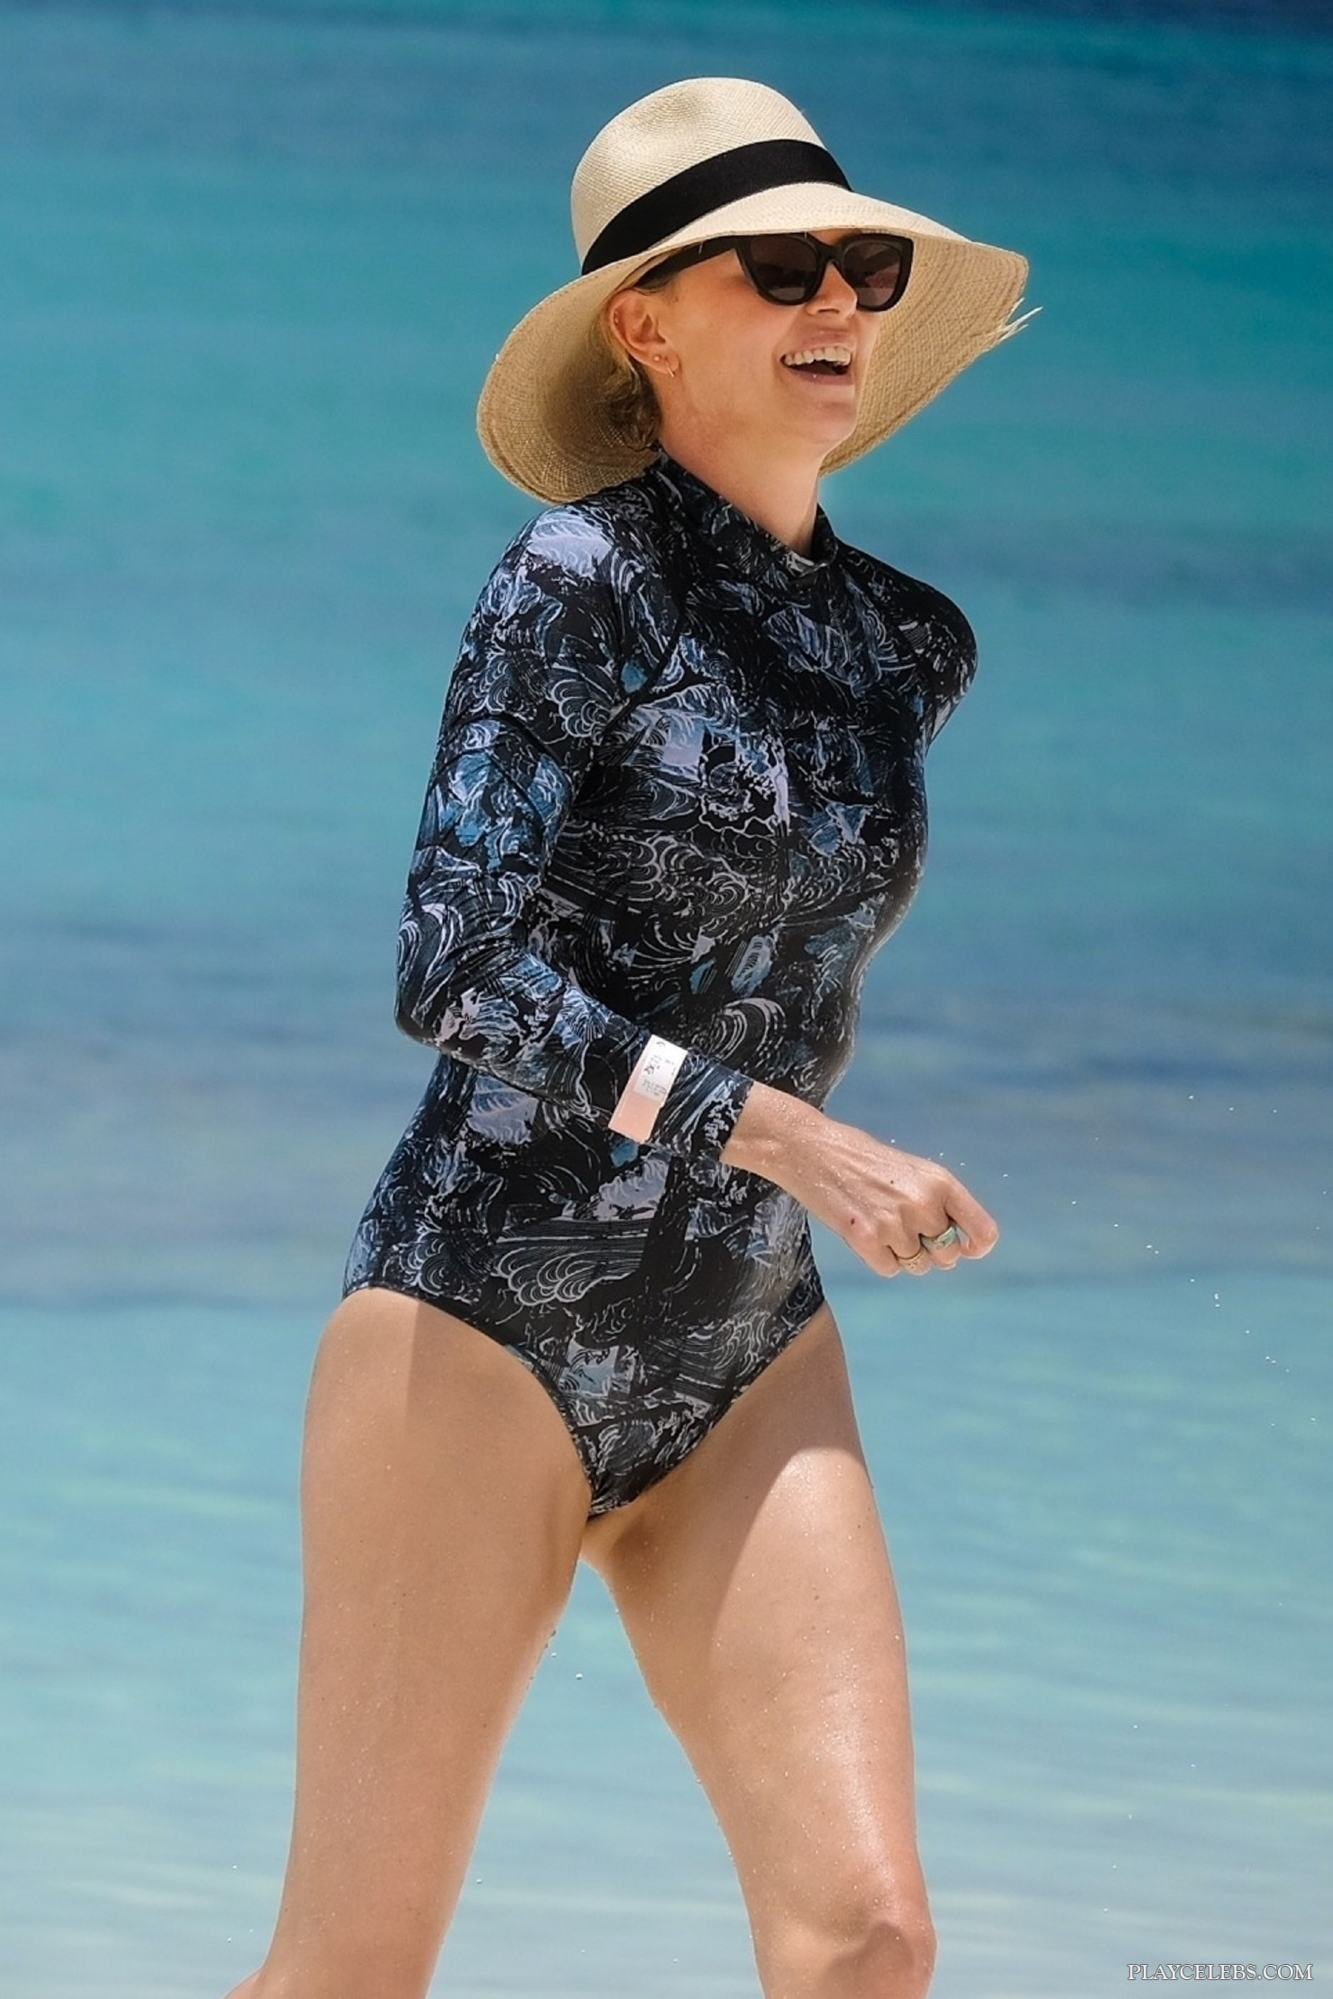 Charlize Theron Caught By Paparazzi In Swimsuit On A Beach